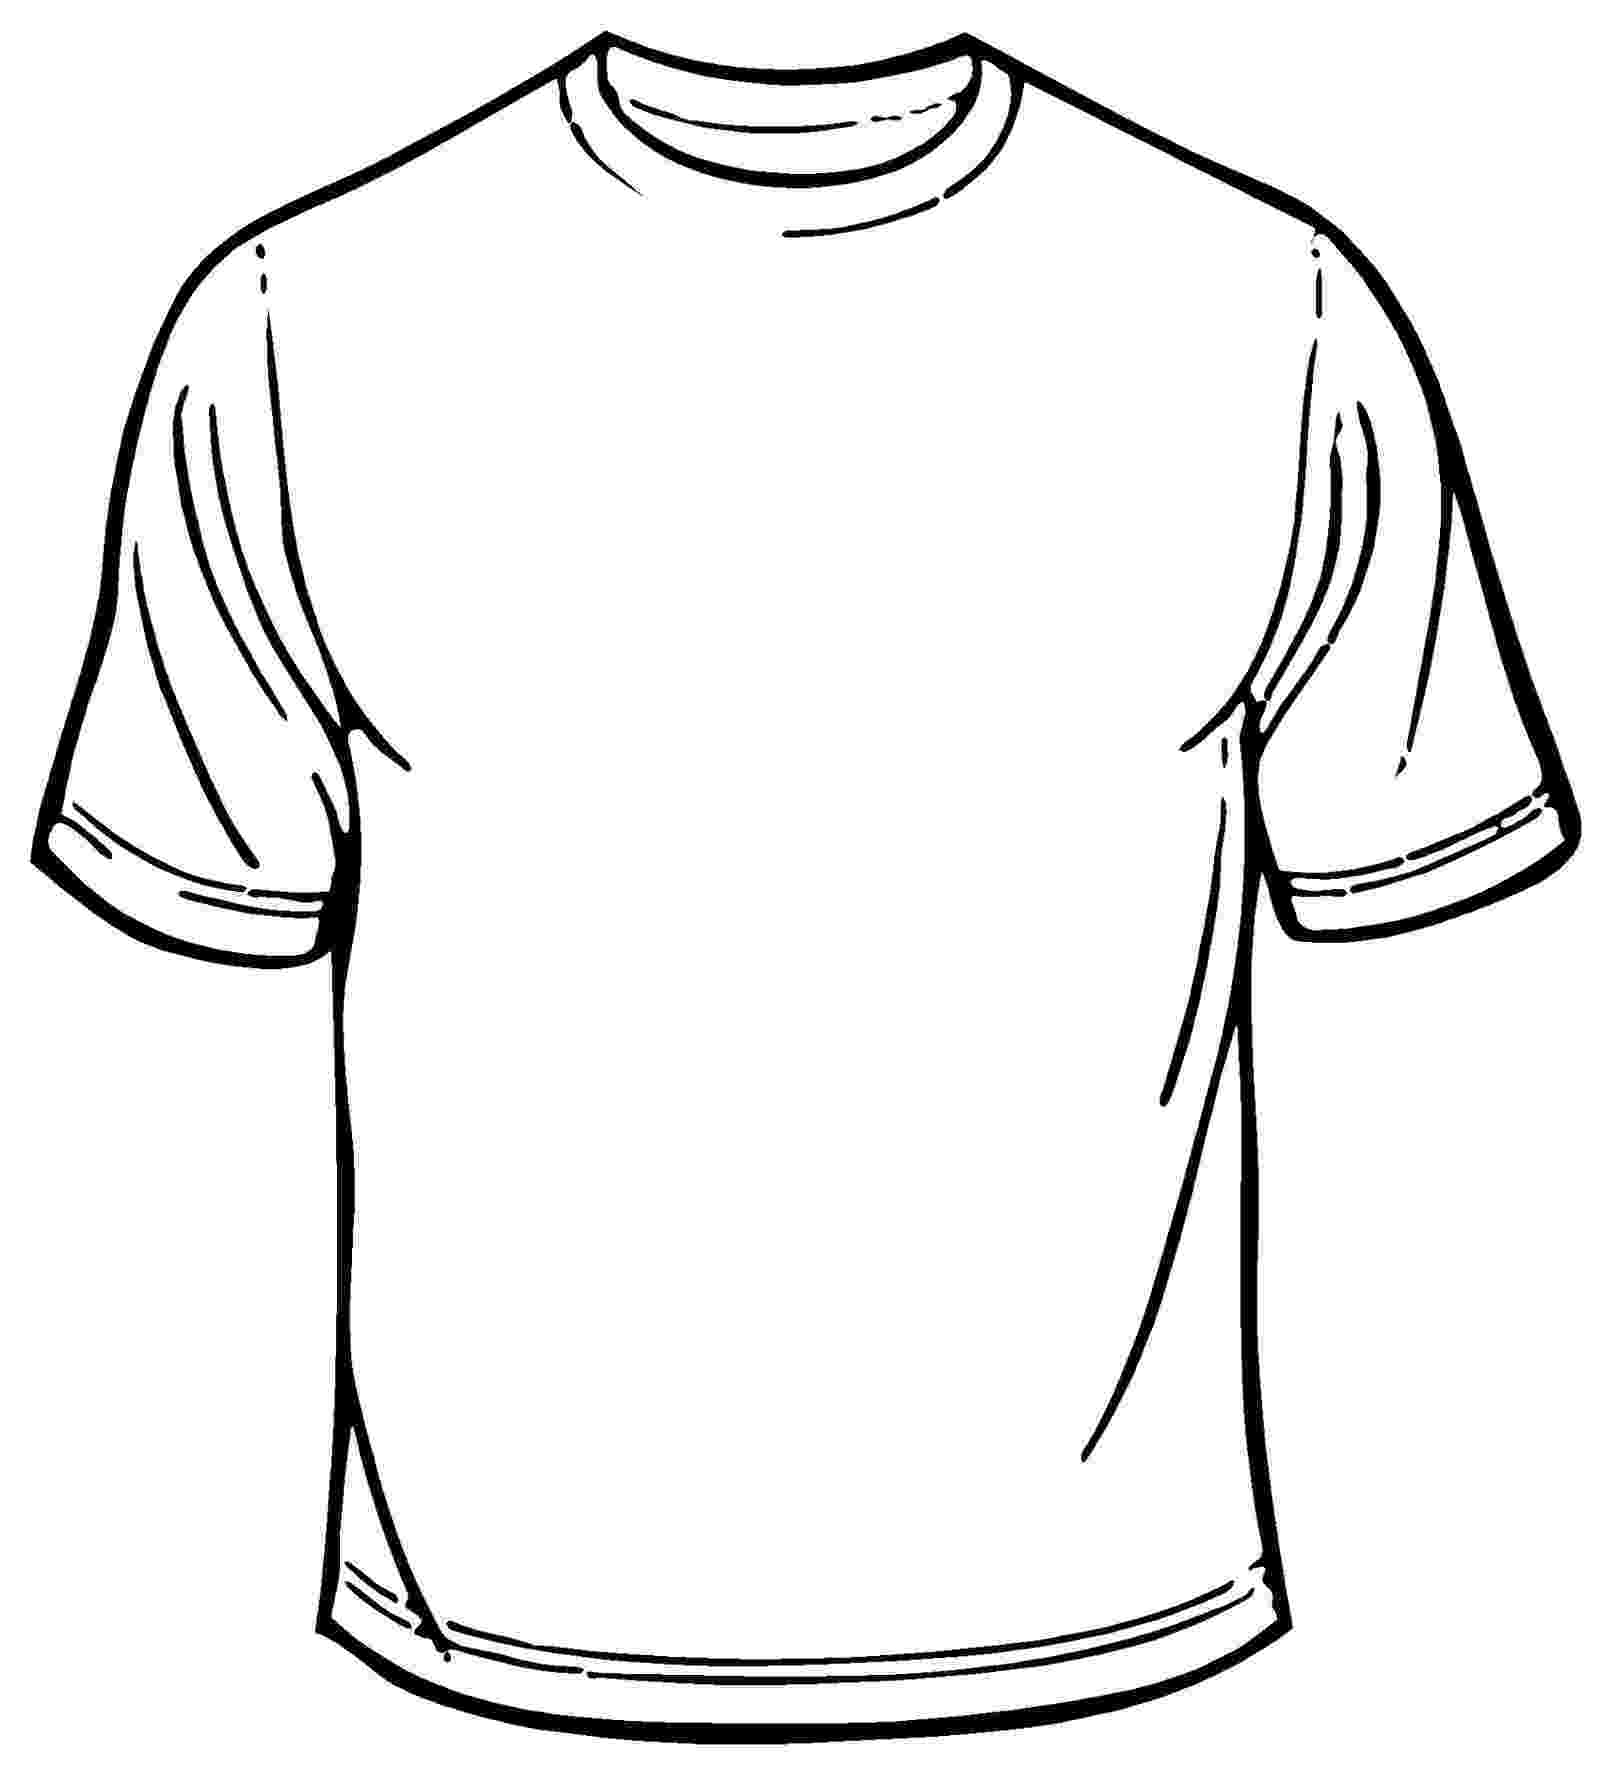 free printable t shirt coloring pages blank t shirt coloring sheet printable t free shirt printable coloring pages